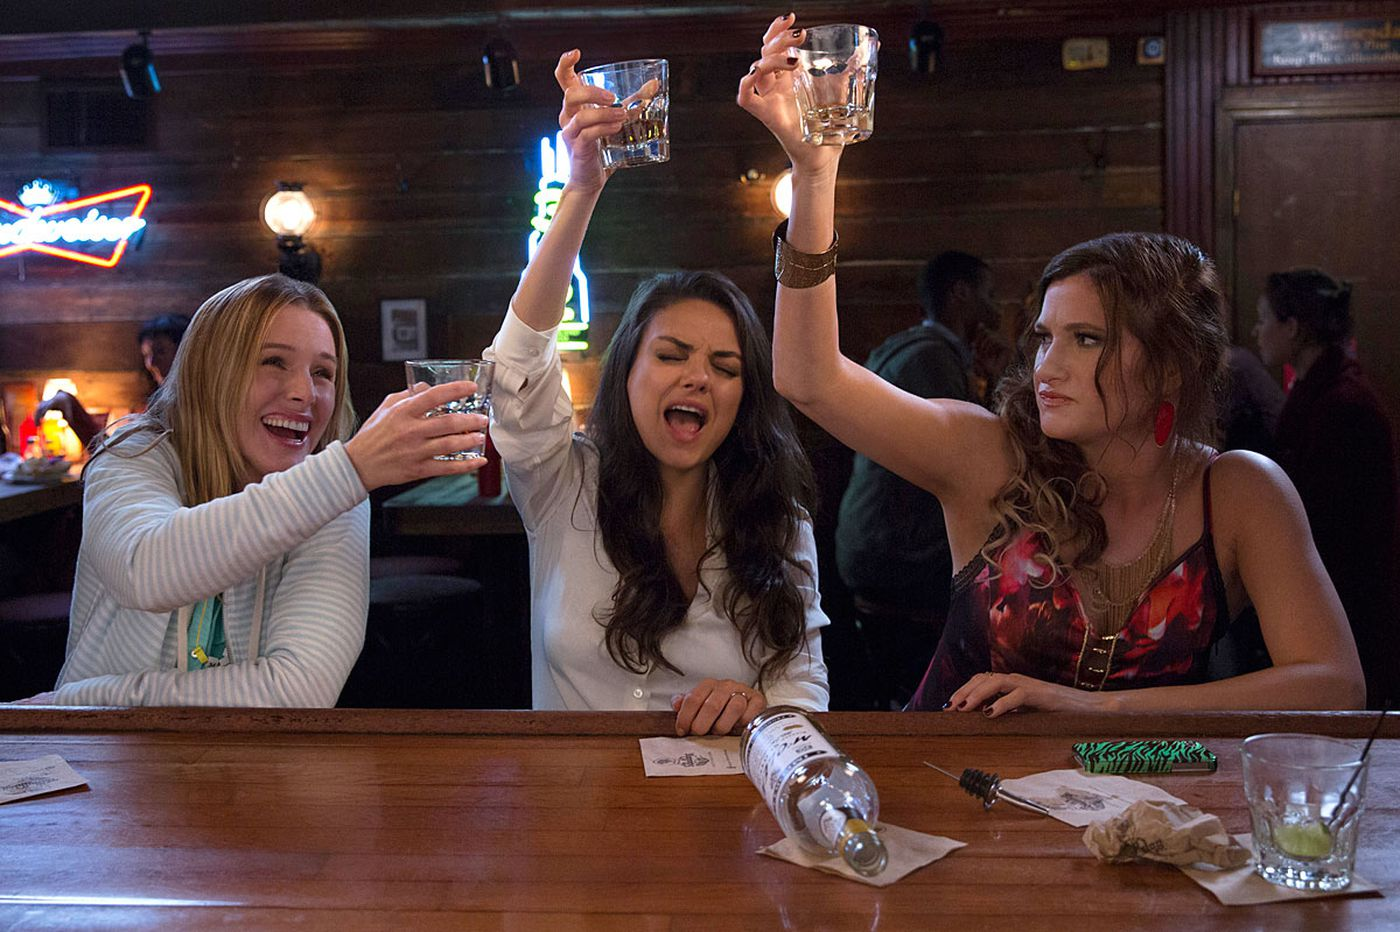 'Bad Moms': Mila Kunis and writers from 'The Hangover' skewer the mommy wars, raunchily